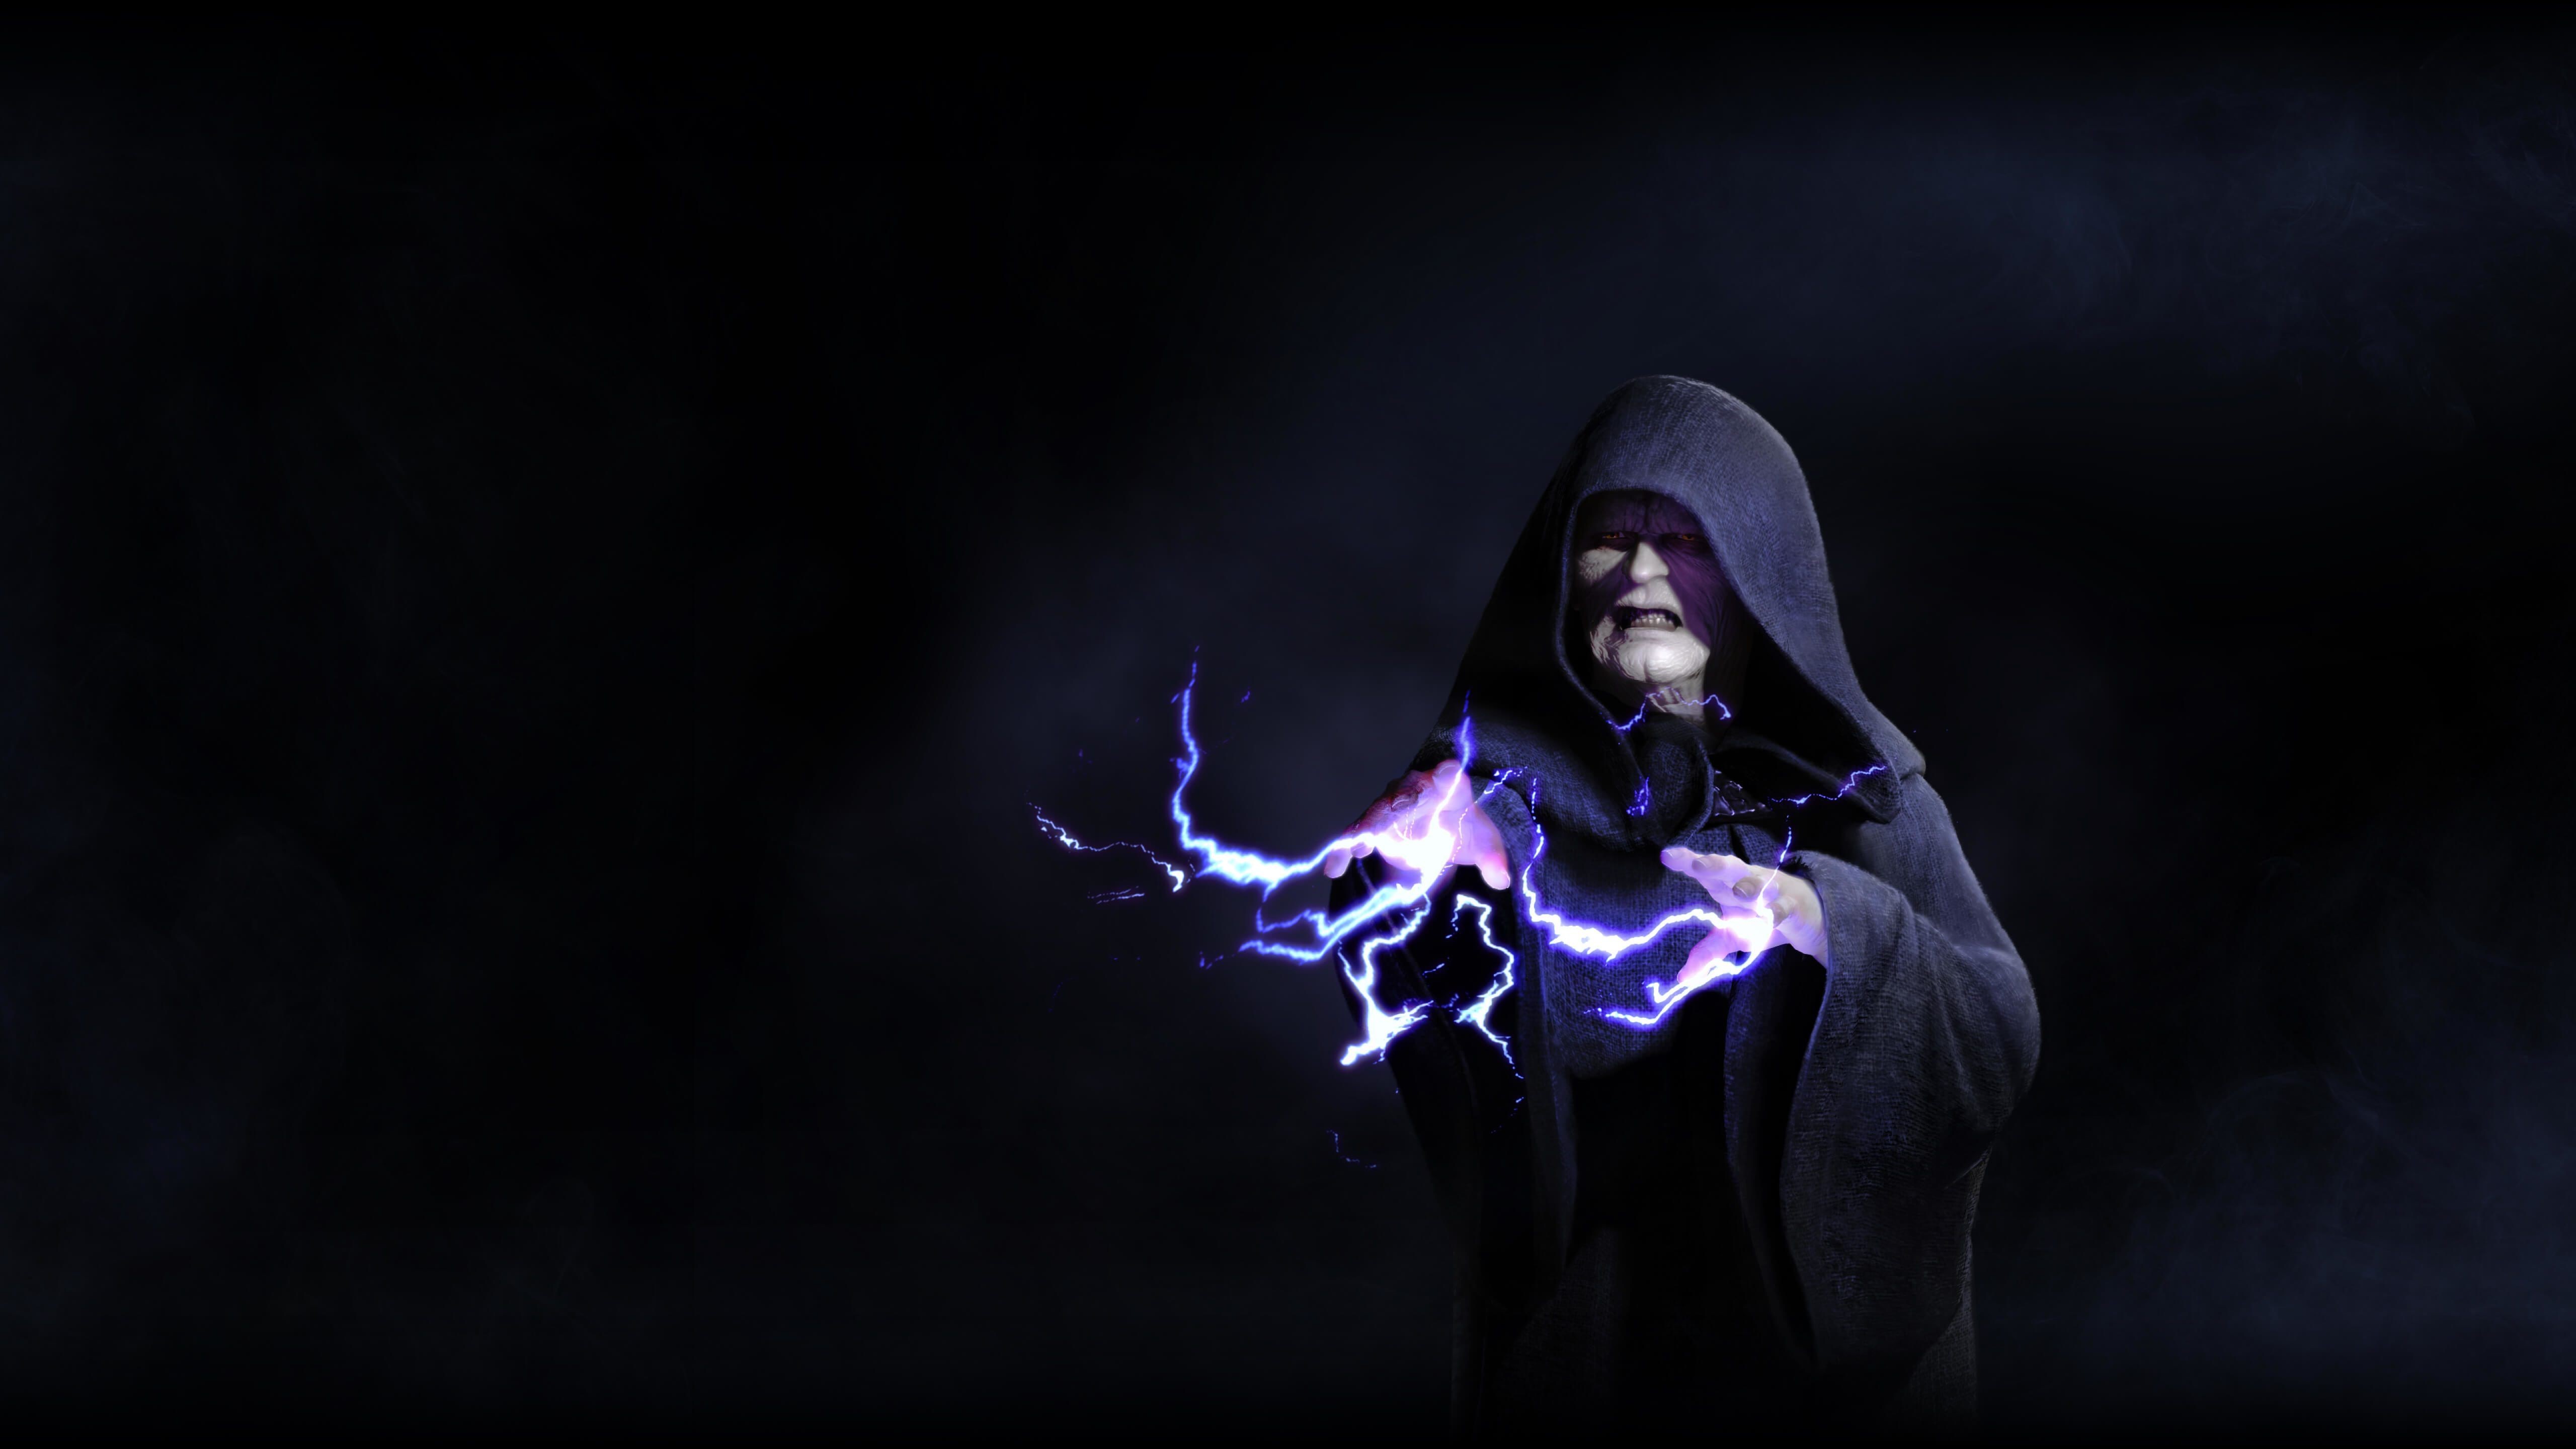 Emperor Palpatine Wallpapers Top Free Emperor Palpatine Backgrounds Wallpaperaccess